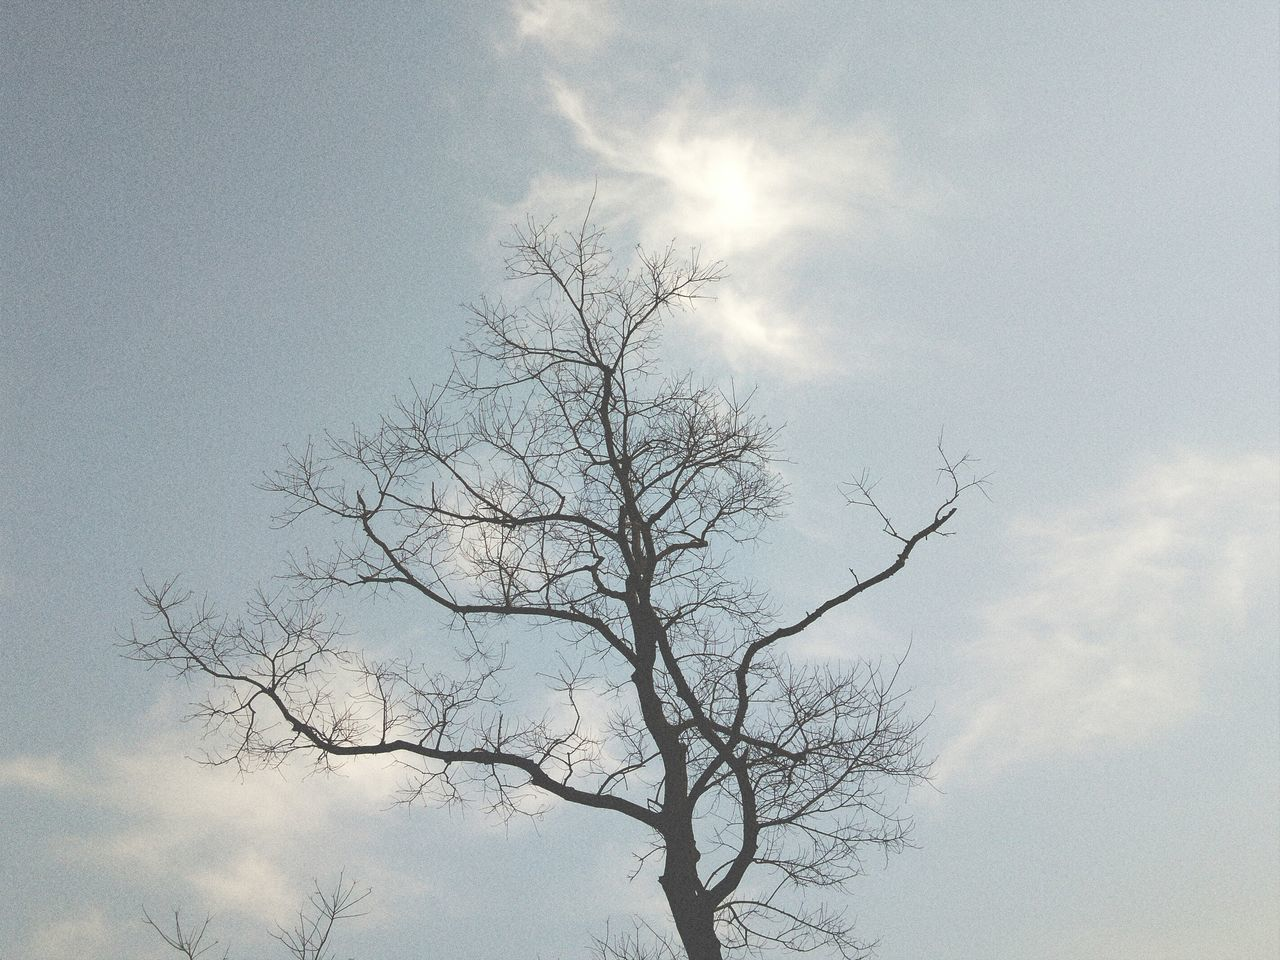 Tree Sky No People Nature Cloud - Sky Bare Tree Outdoors Branch Beauty In Nature Day Phone Photography Light Up Your Life Sunshine ☀ Healer Alone Time Tree Nature No Bird In Sight 2016 Picture Beauty In Nature